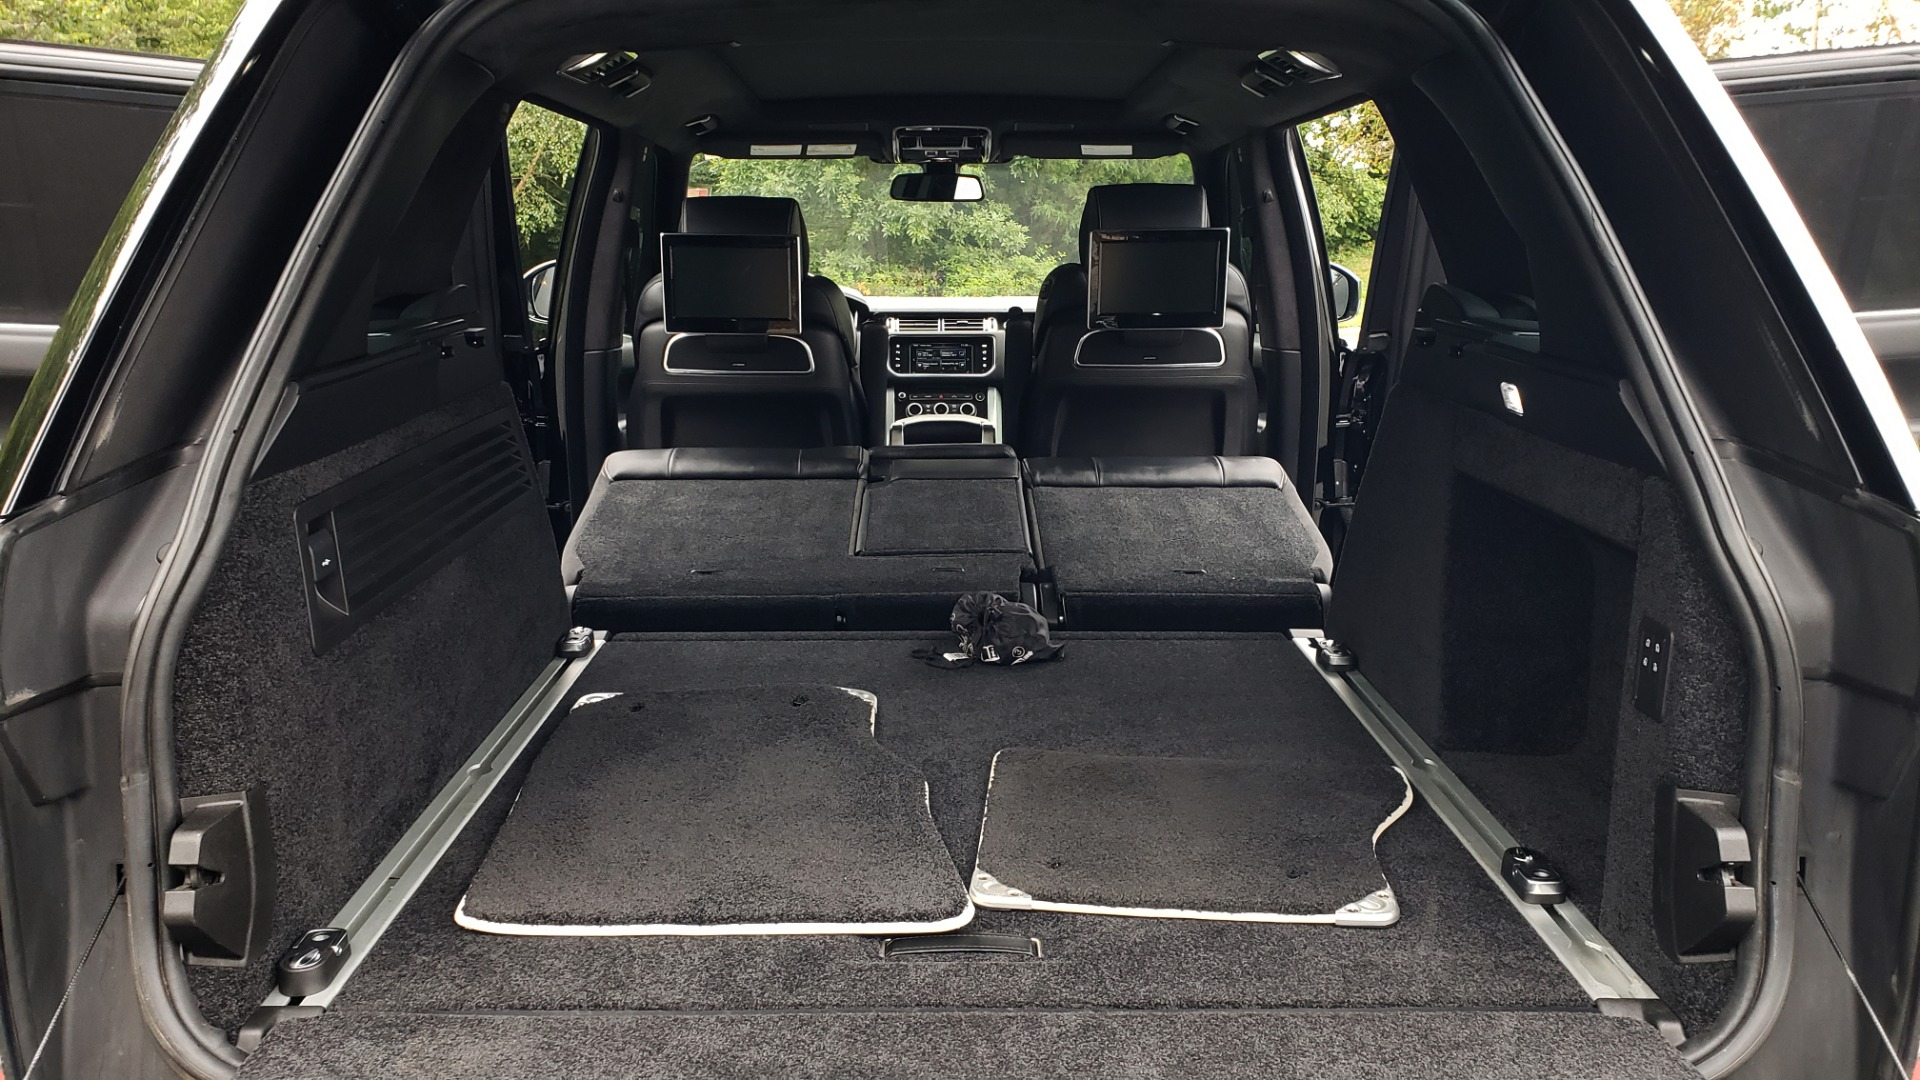 Used 2016 Land Rover RANGE ROVER AUTOBIOGRAPHY / SC-V8 / LWB / PANO-ROOF / NAV / MERIDIAN / ENT / REARVIEW for sale Sold at Formula Imports in Charlotte NC 28227 23